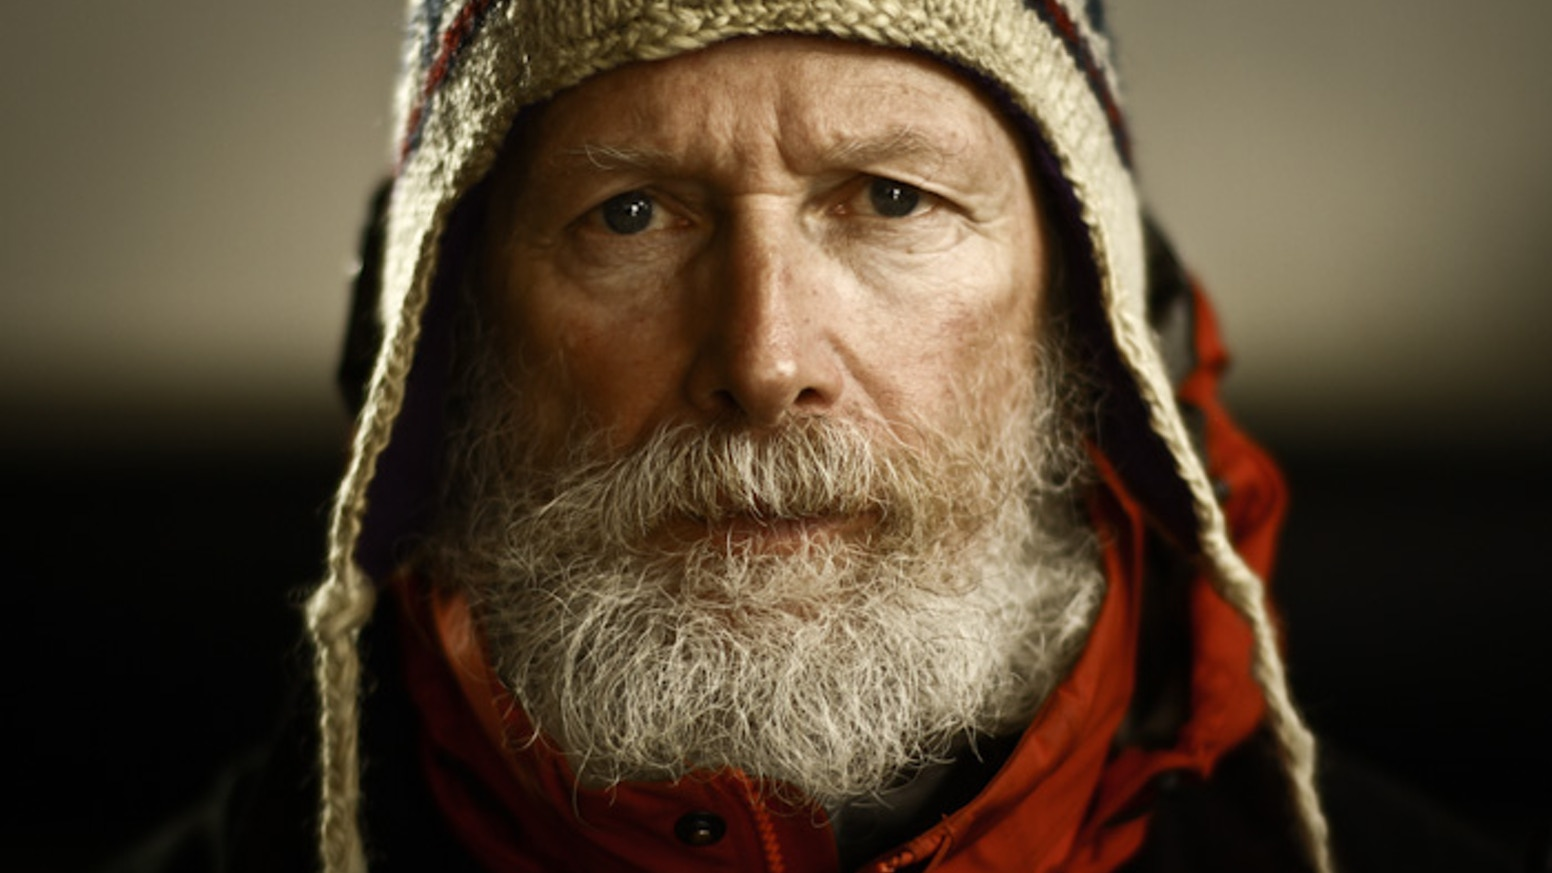 An immensely visual film on the life & work of Ski Patrol, Search & Rescue teams, and Avalanche Safety in the Rocky Mountains